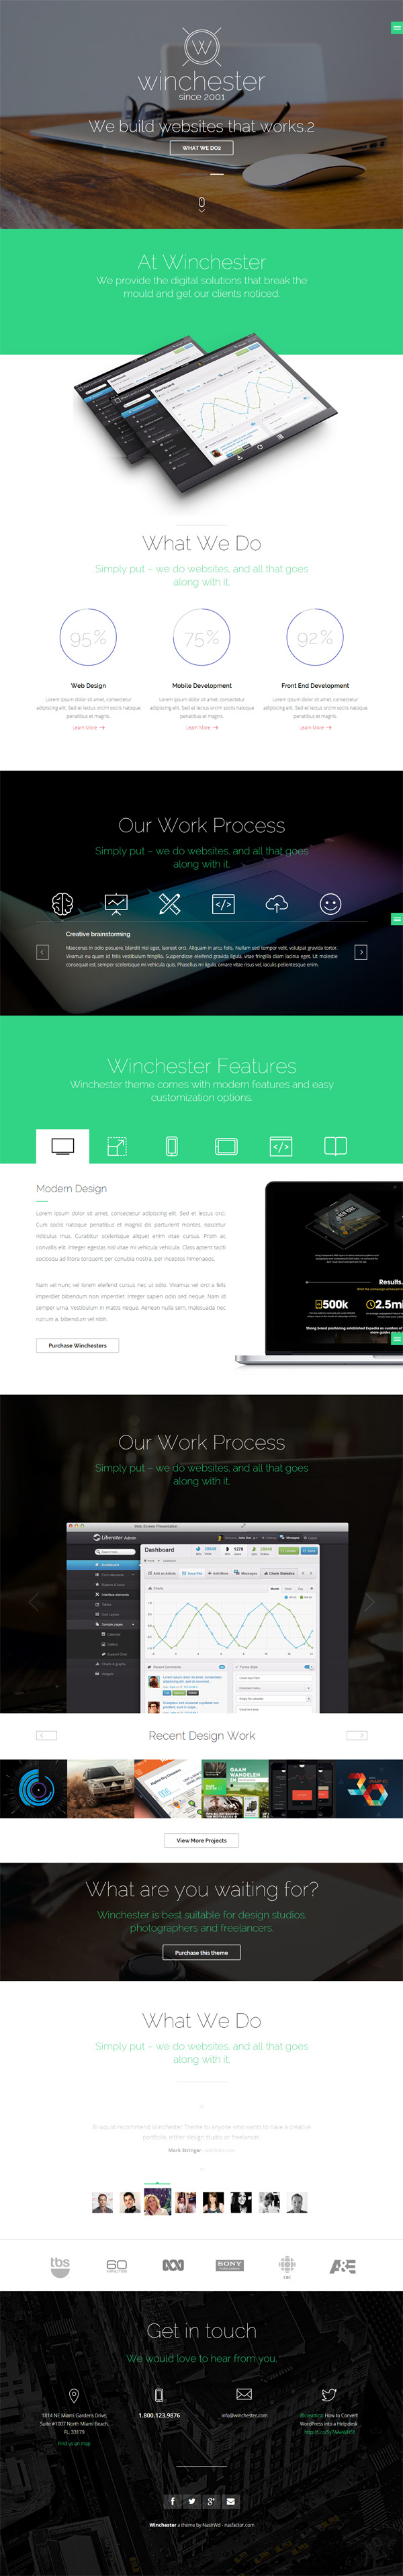 Html5 responsive templates with amazing ui design graphic design winchester html parallax one page template maxwellsz